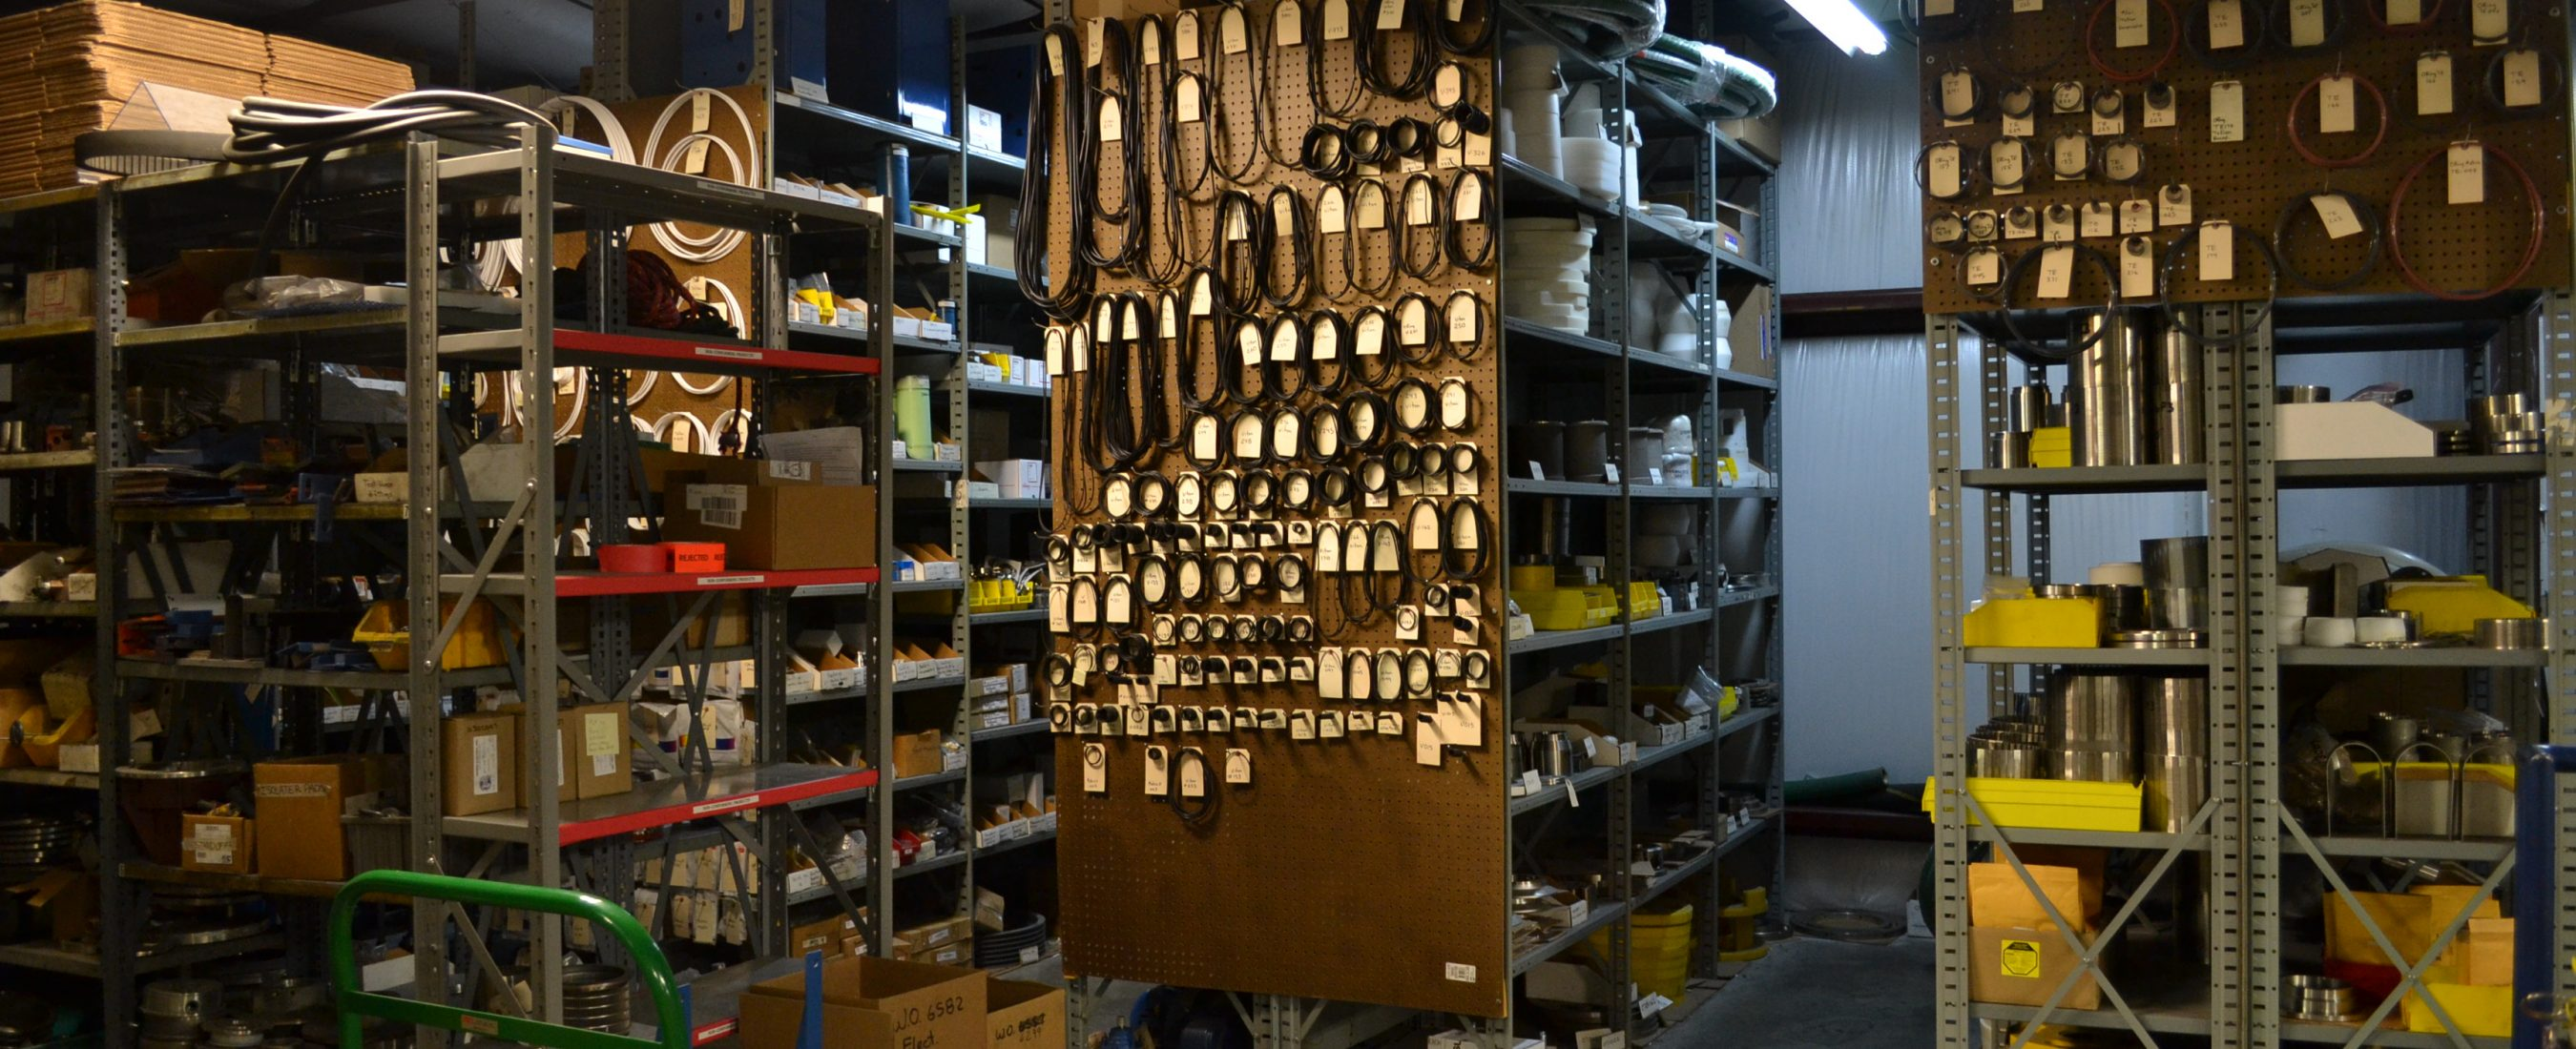 Full stock of on-site of CMC and Premier Mill Parts.